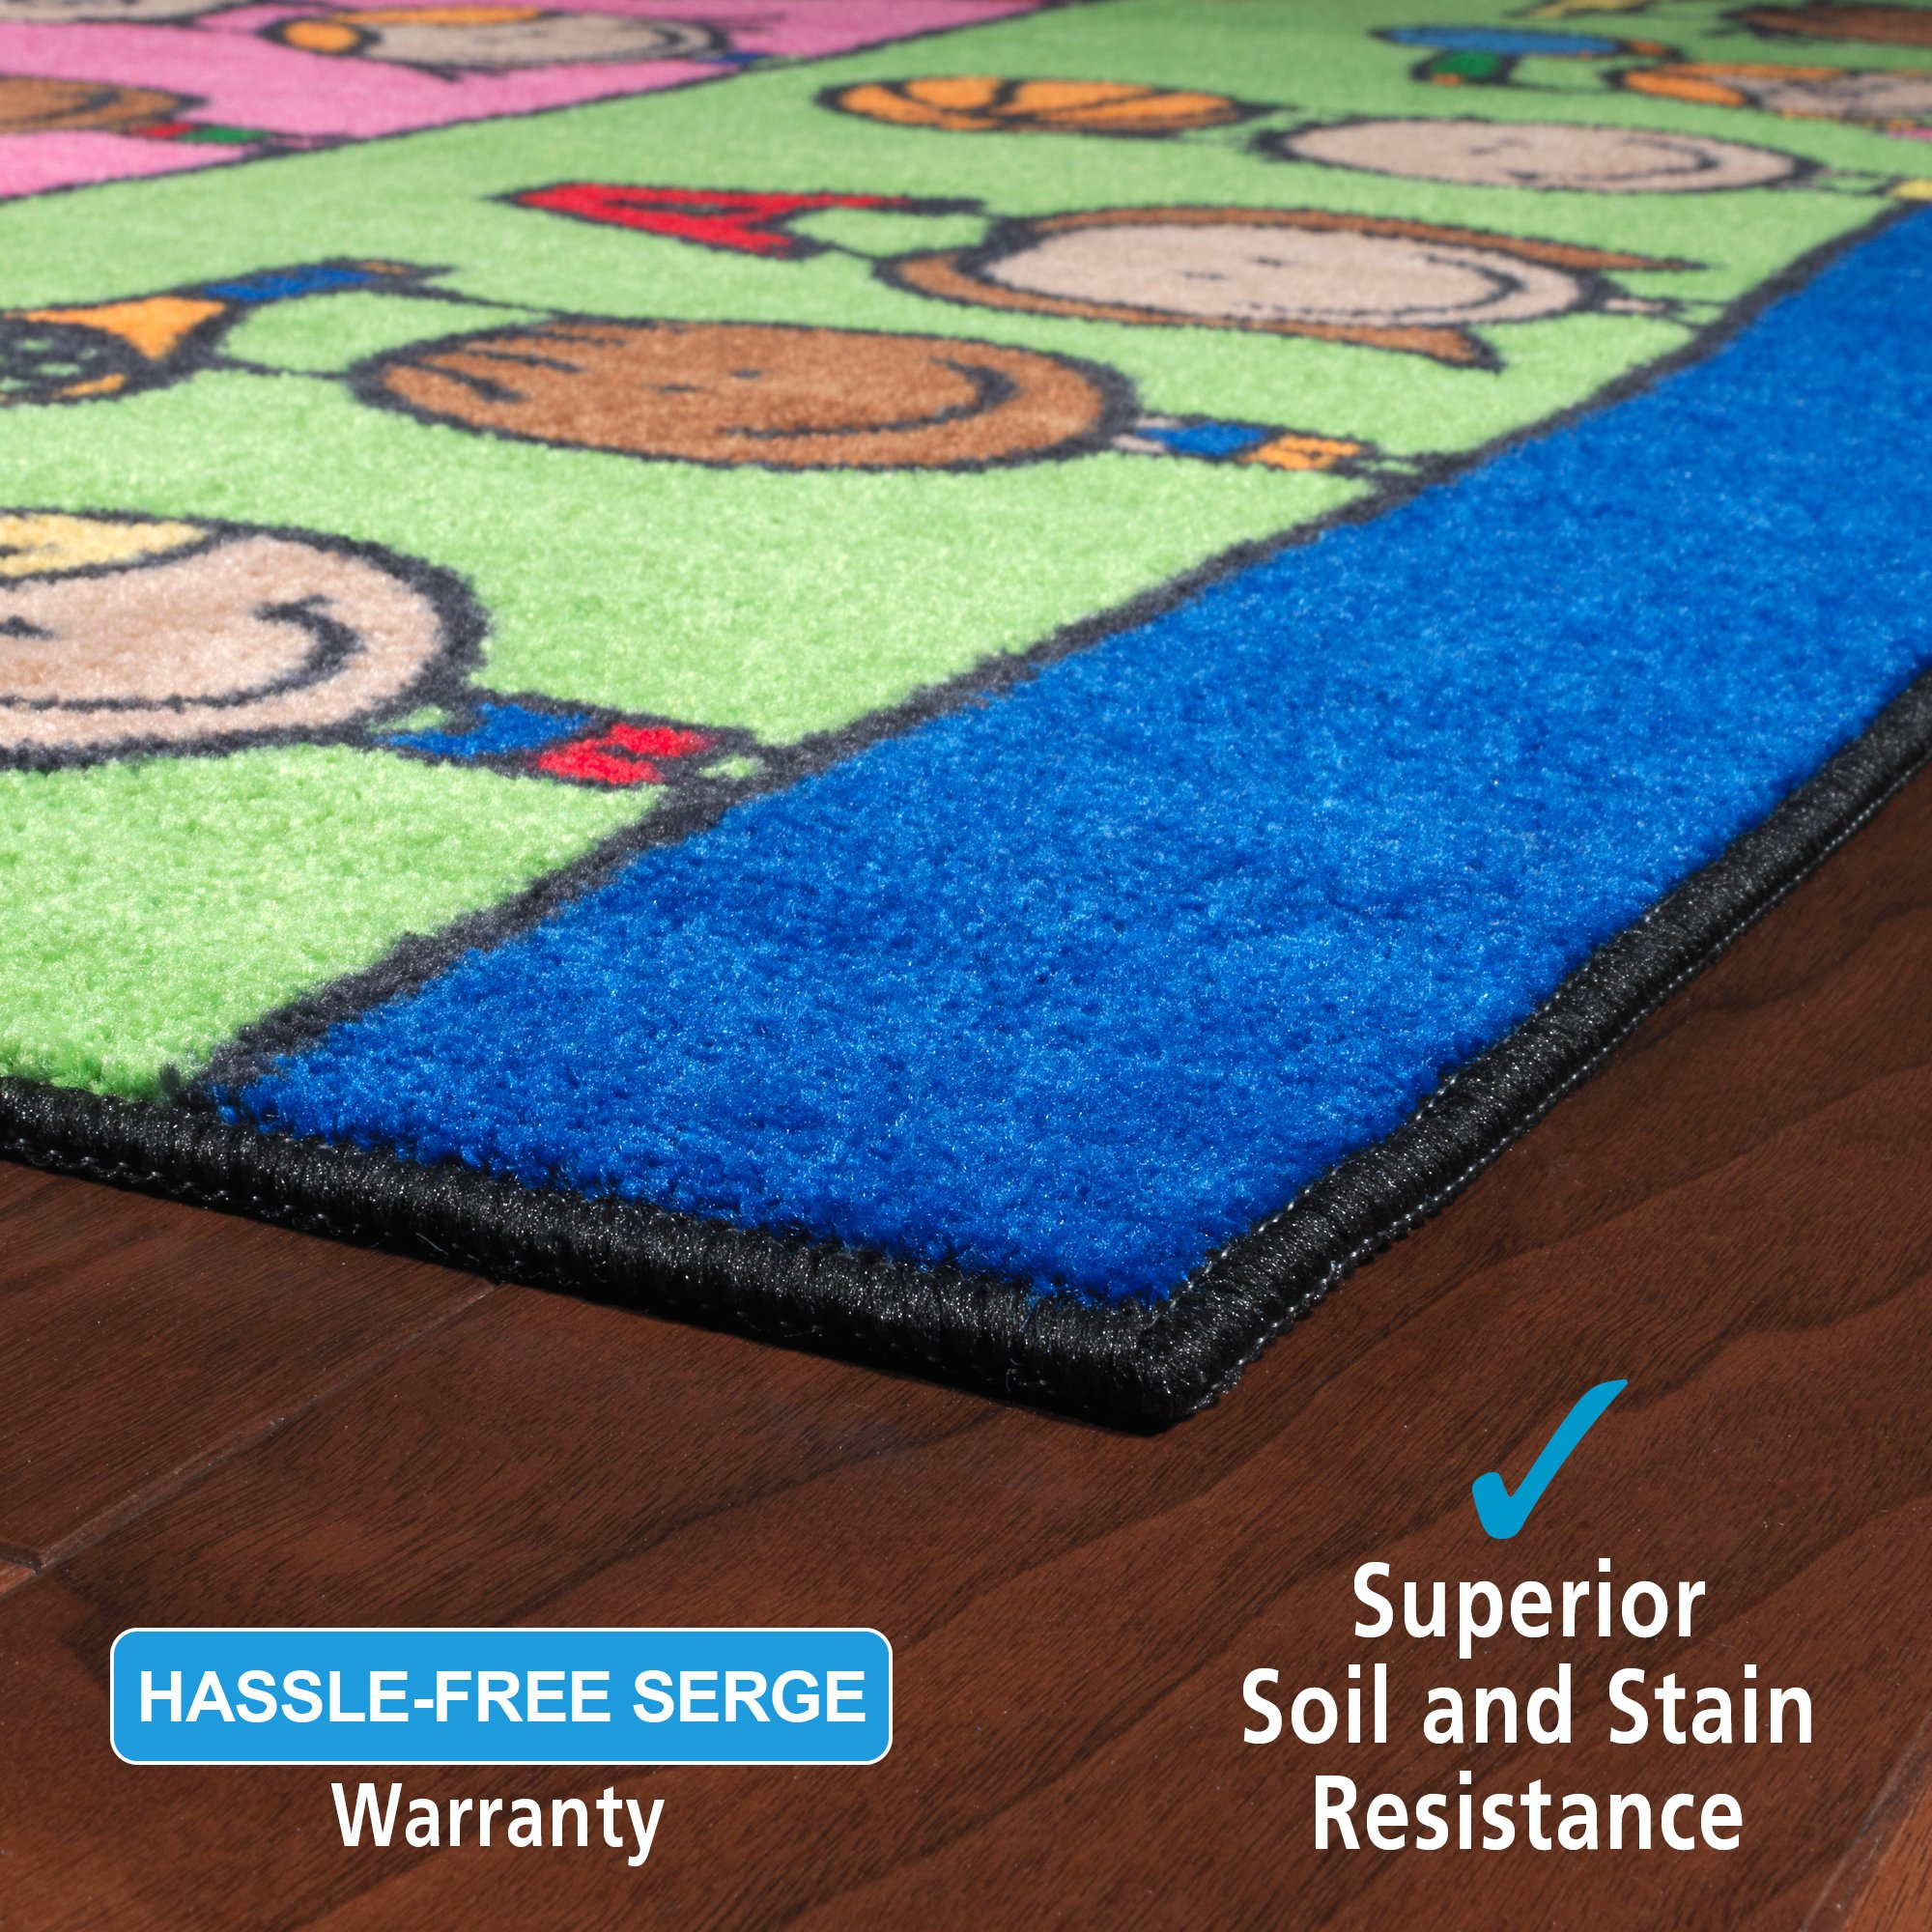 Flagship Carpets CE190-28W Fun at School Rug, Explore Health and Wellness As Well As STEAM Subjects, Children's Classroom Educational Carpet, 5' x 8', 60'' Length, 96'' Width, Multi-Color by Flagship Carpets (Image #5)